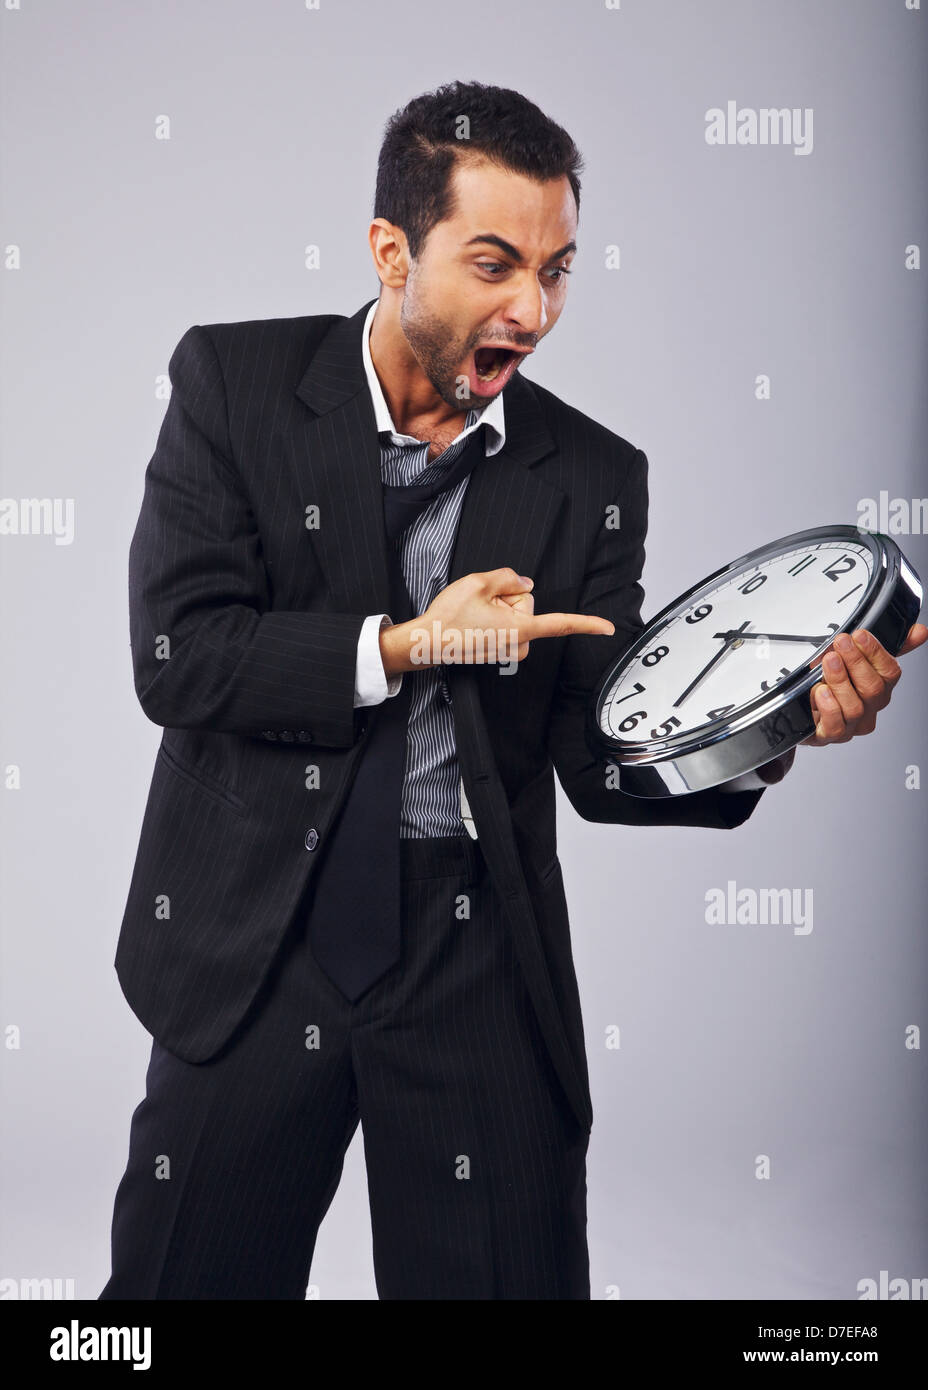 Angry businessman shouting and pointing to a clock - Stock Image